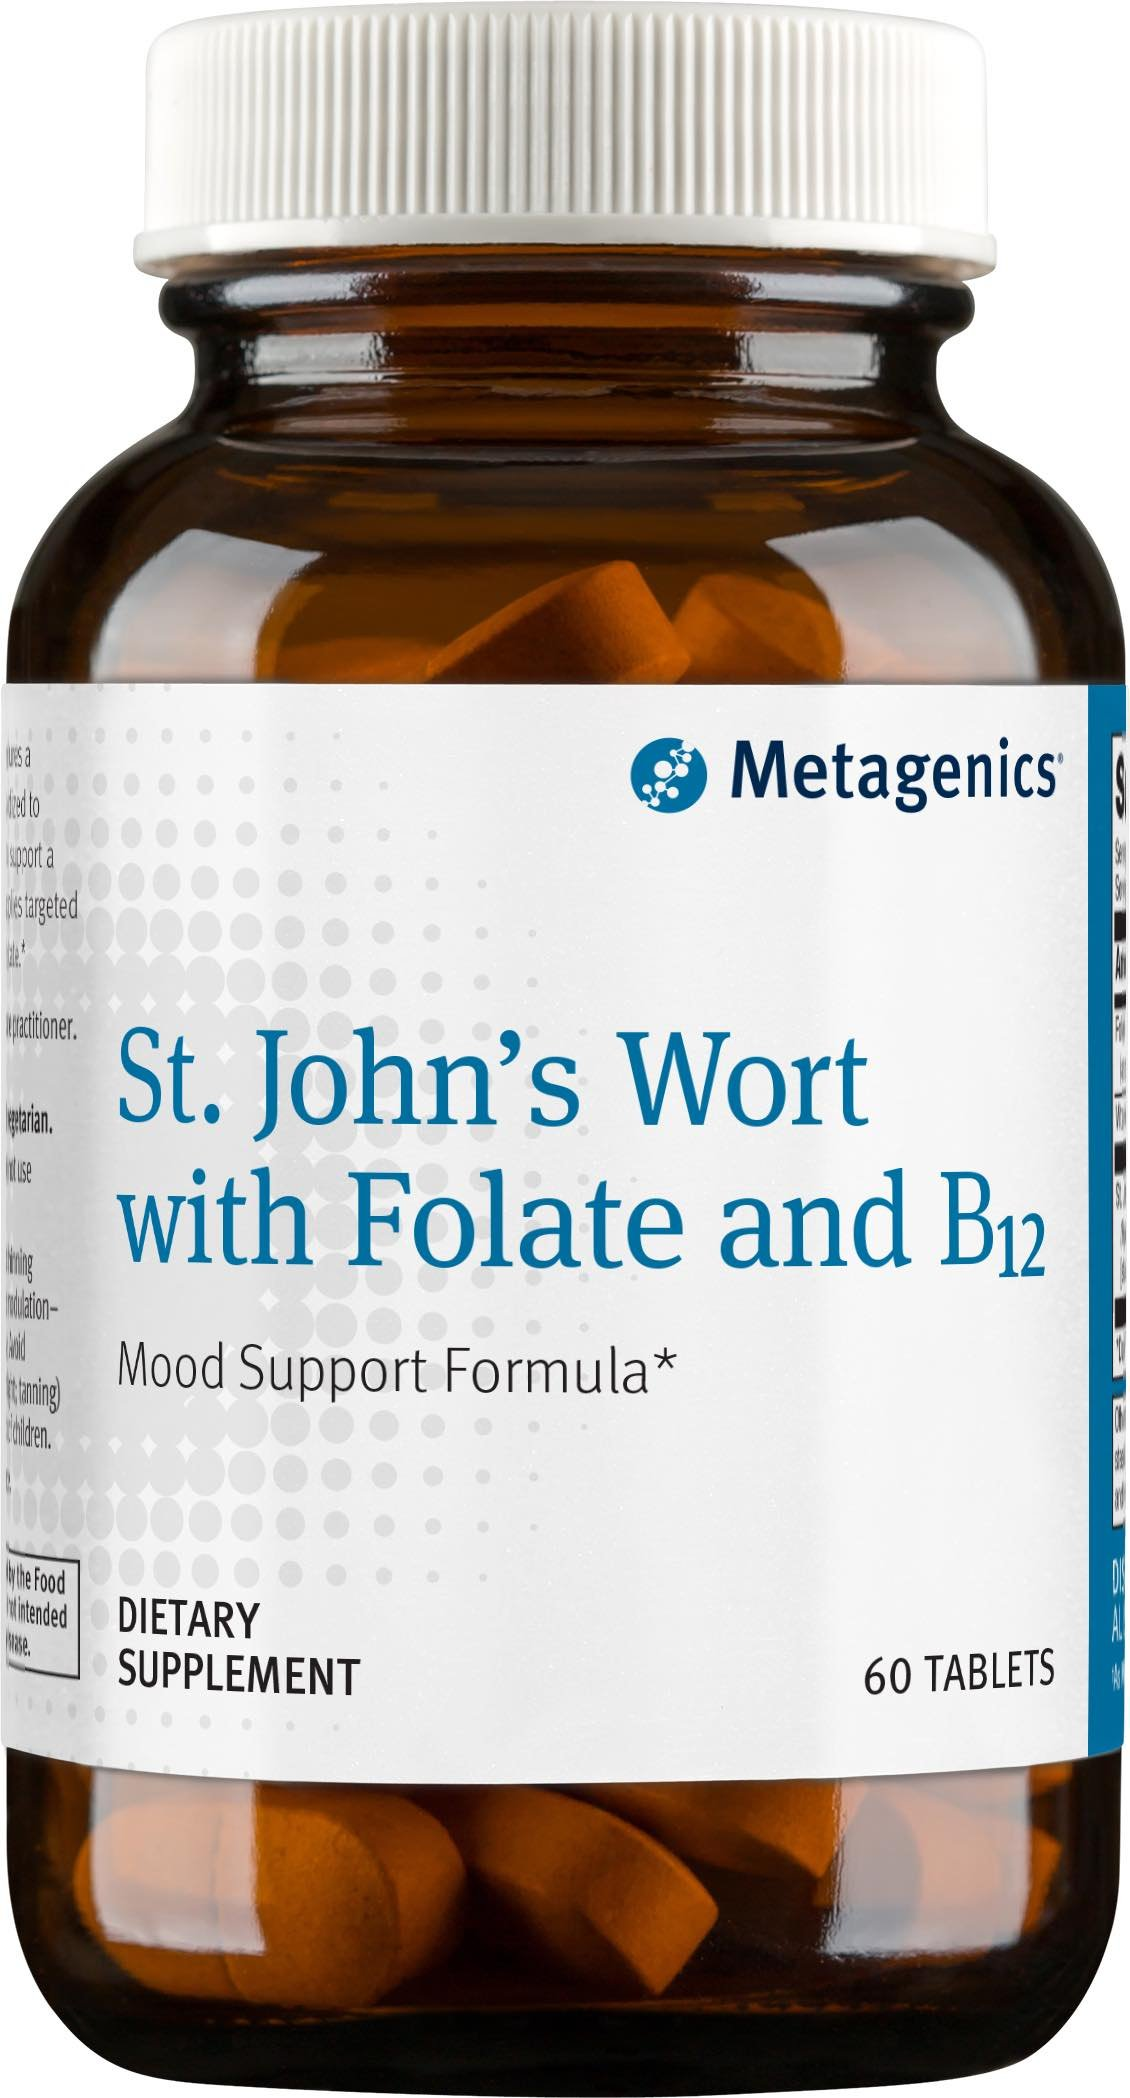 Metagenics St. John's Wort with Folate and B12 -- 60 Tablets